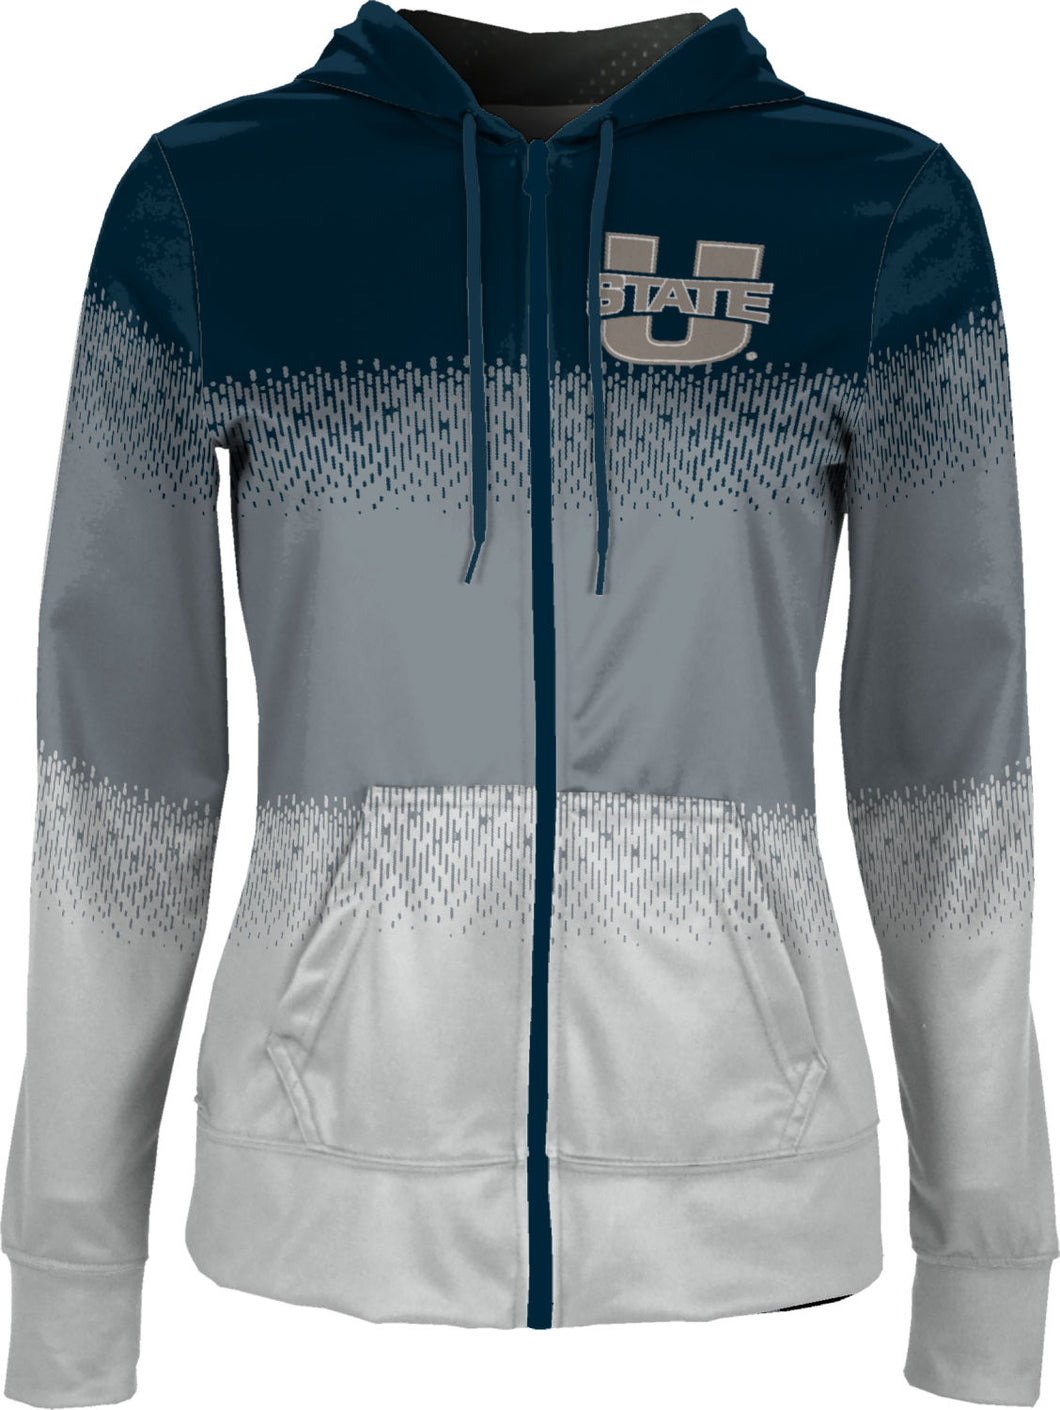 Utah State University: Girls' Full Zip Hoodie - Drip